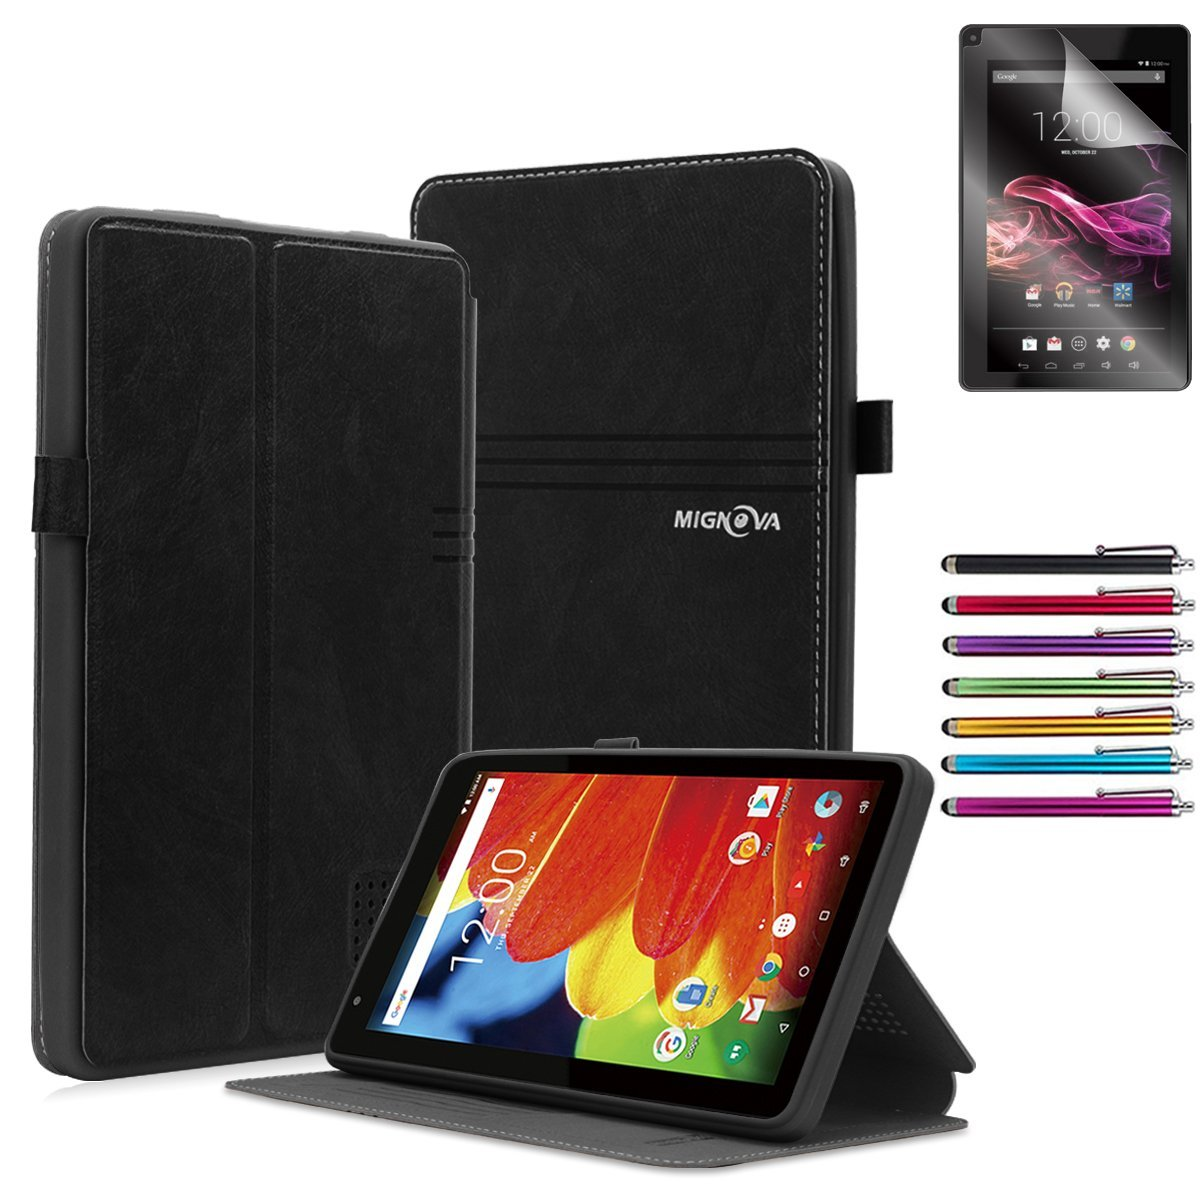 "Mignova RCA Voyager 7 Case, Folio leather case for RCA Voyager 7"" 16GB / 8 GB Tablet Android 6.0 (Marshmallow) + Stylus pen(Black)"